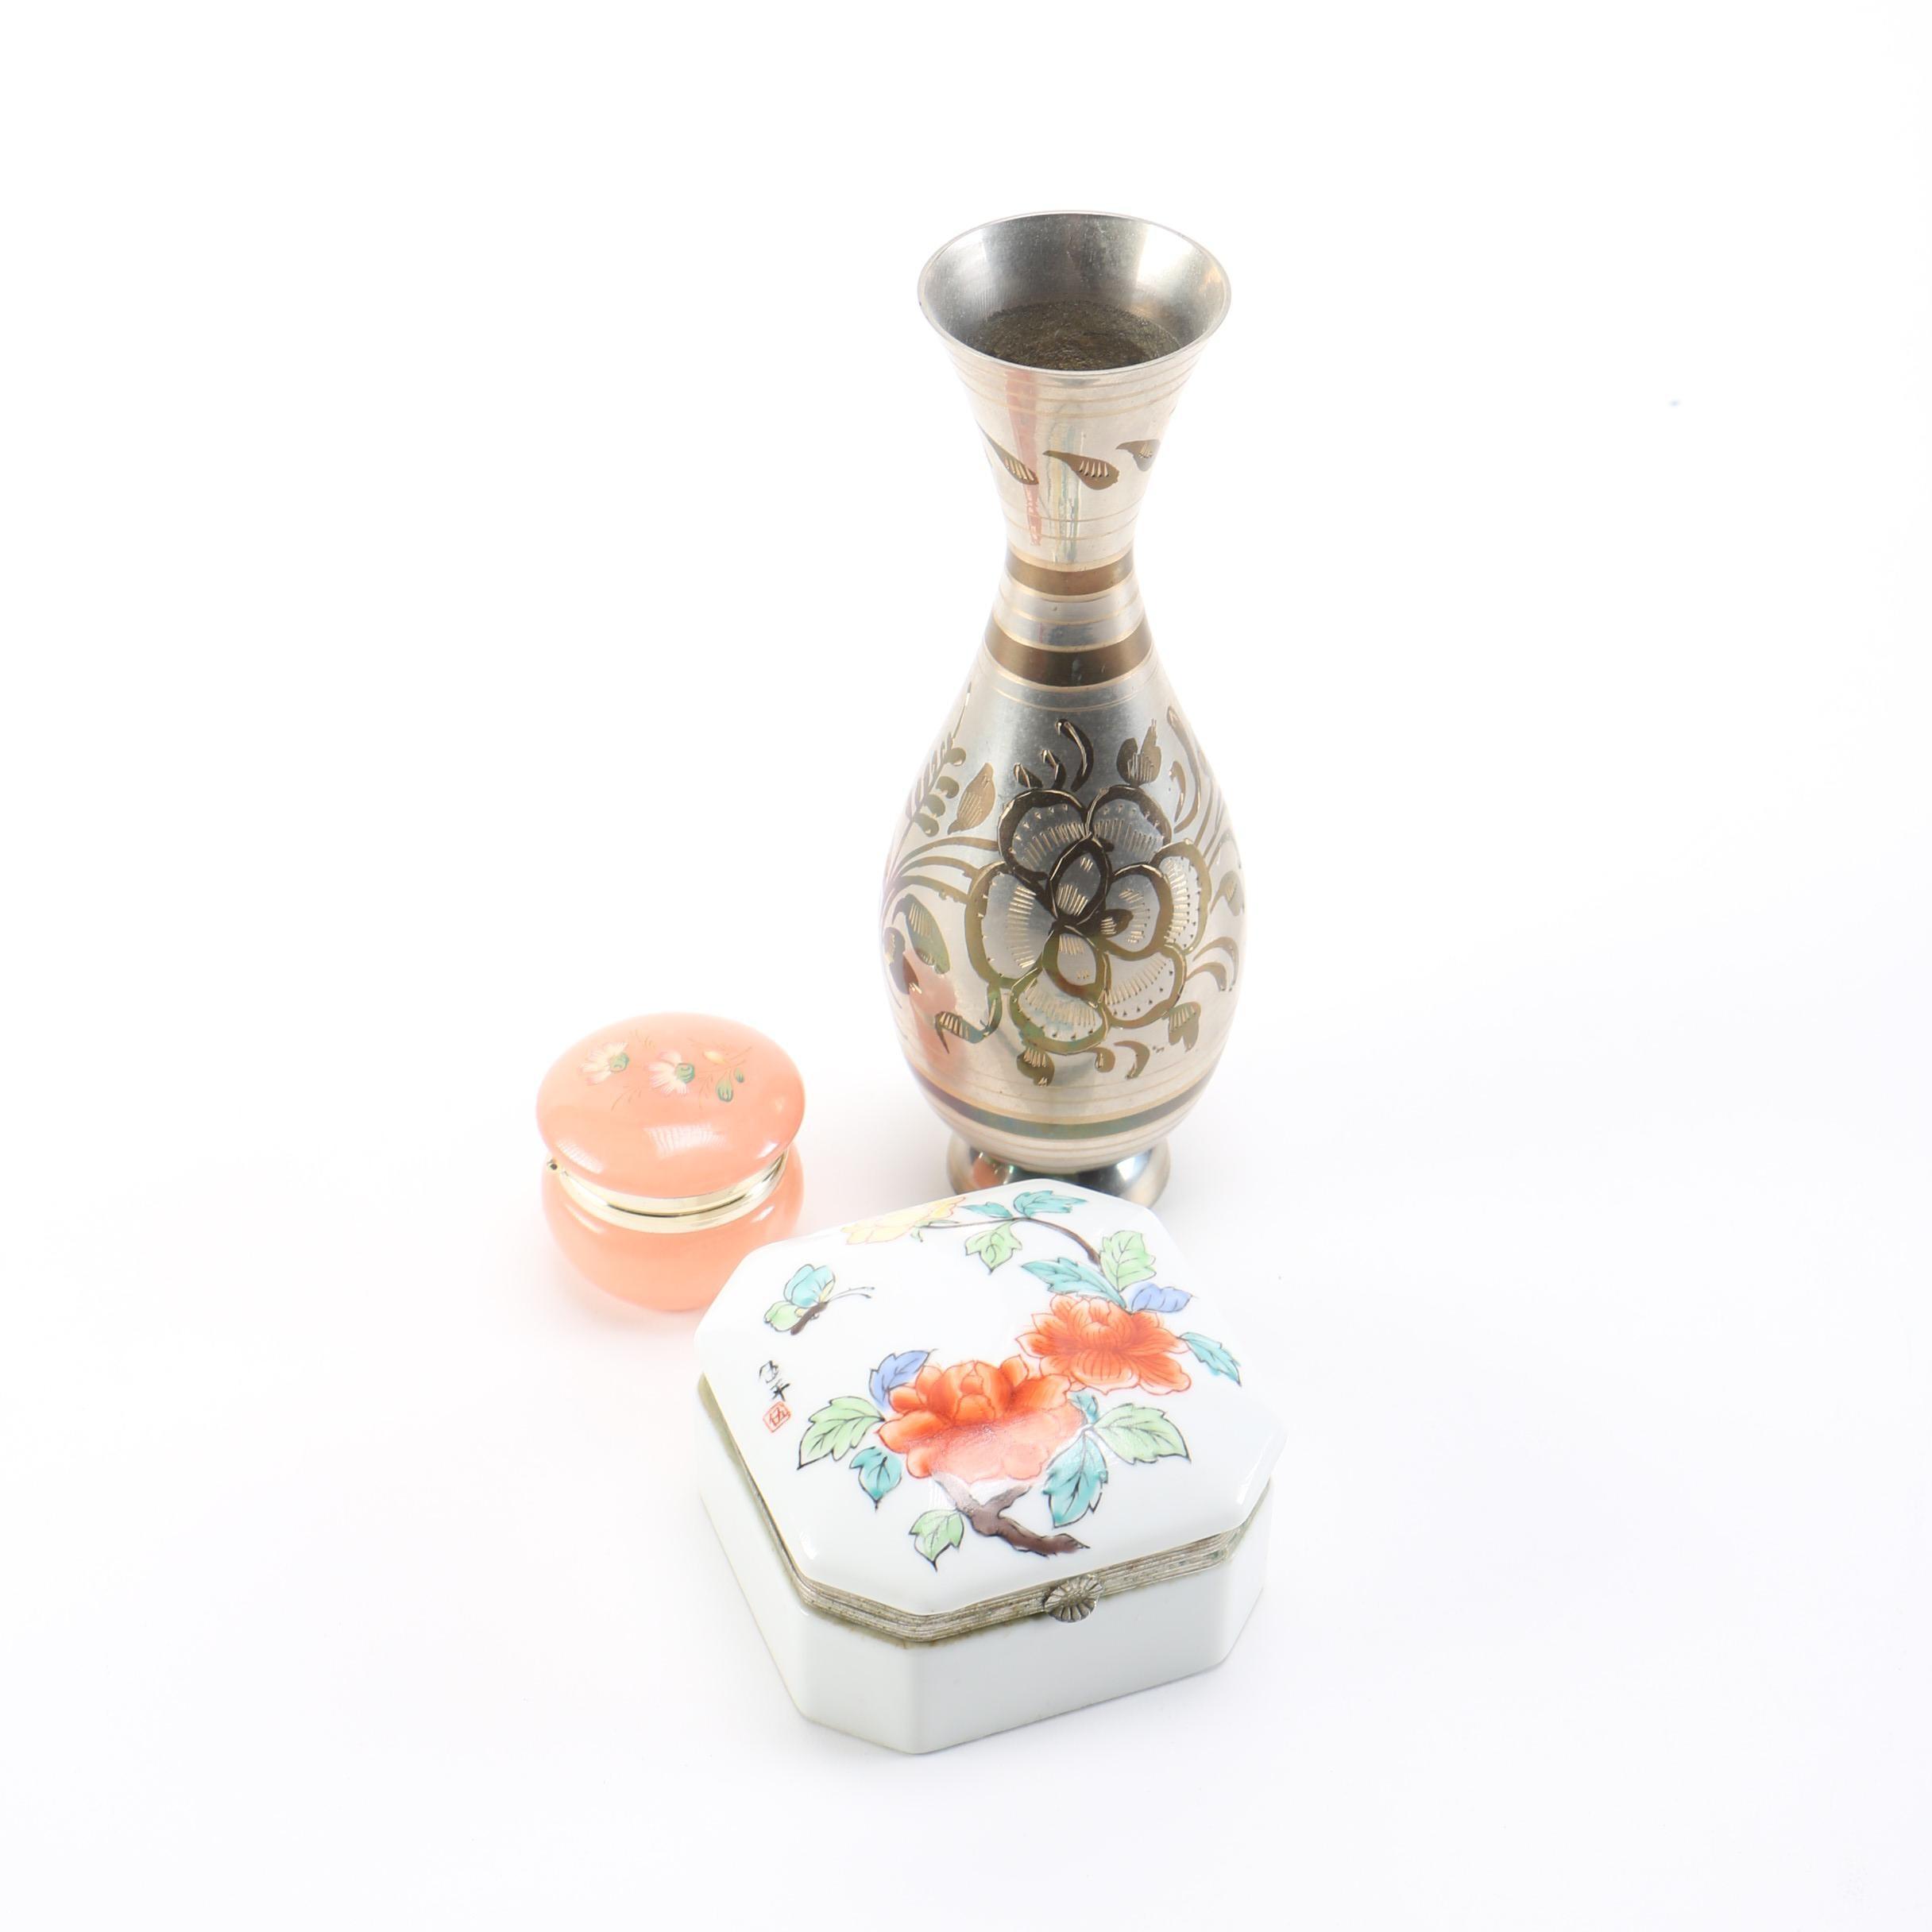 Trinket Boxes and a Vase